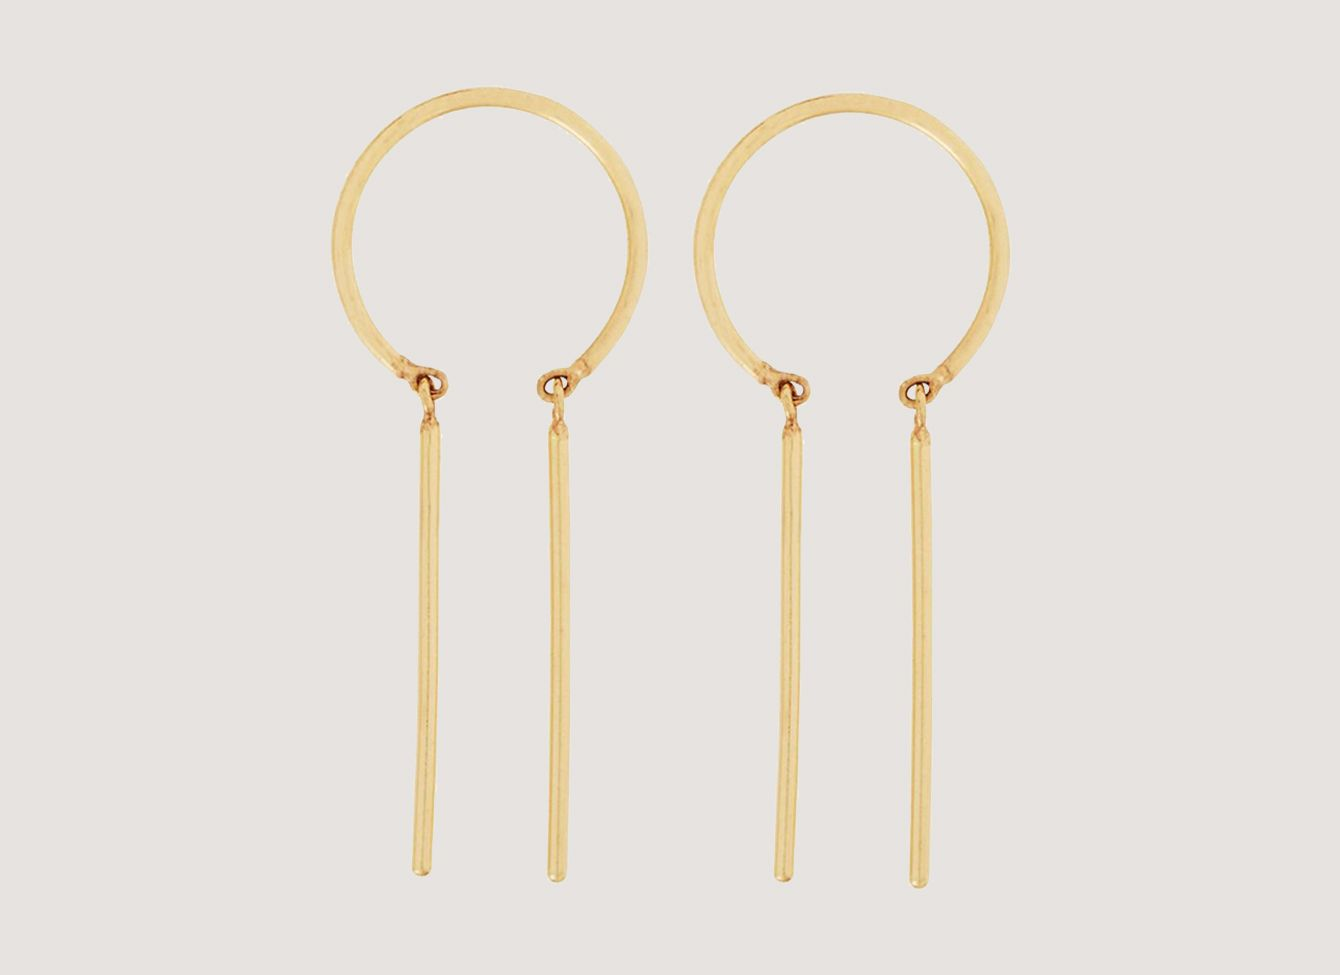 Jack + G Chime Earring in Yellow Gold, Single